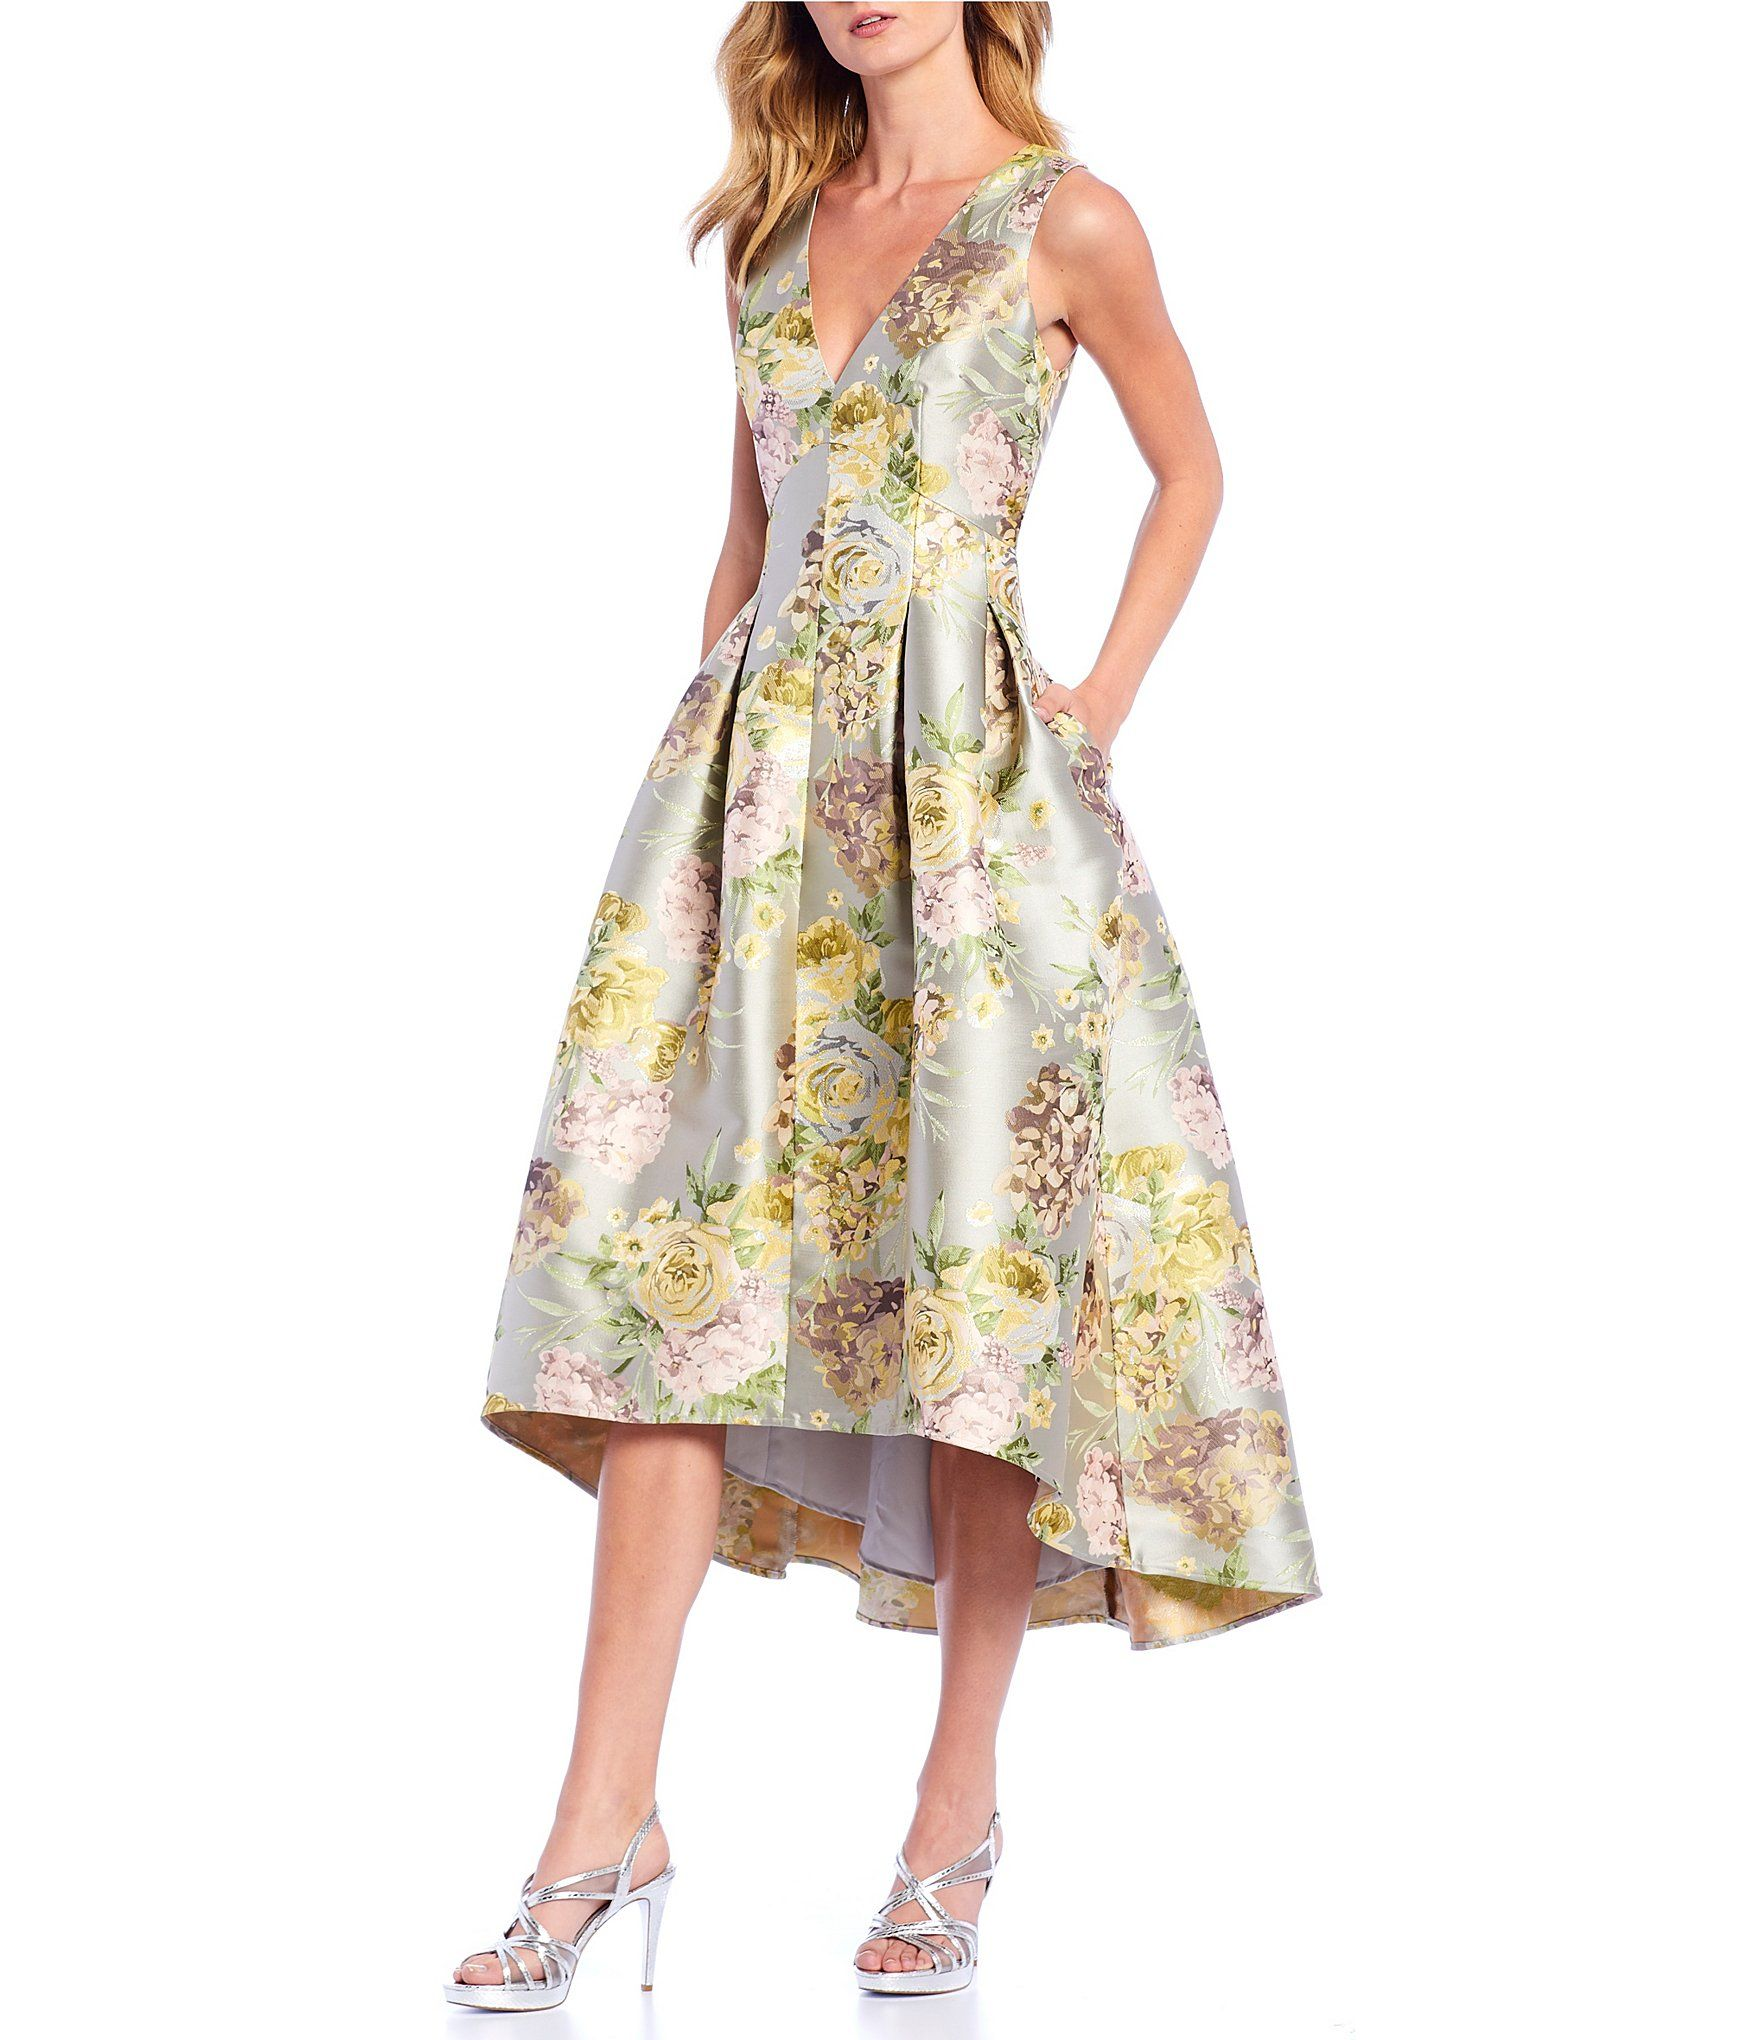 32+ Womens high low wedding guest dresses information